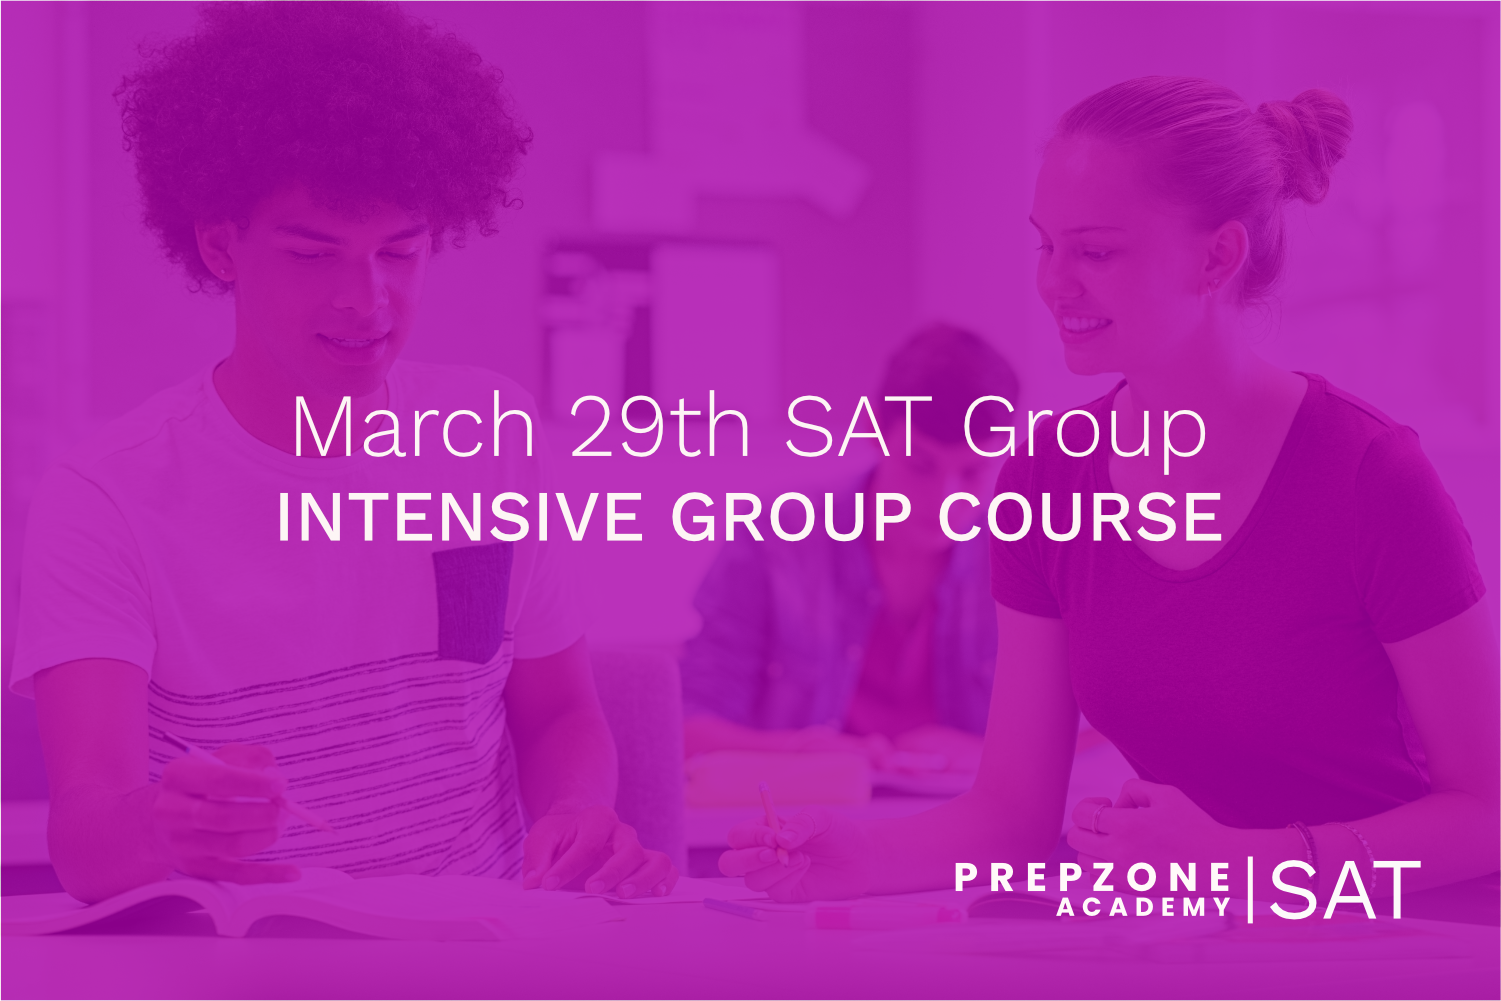 SAT Intensive Group Course Schedule – March 29th, 2021